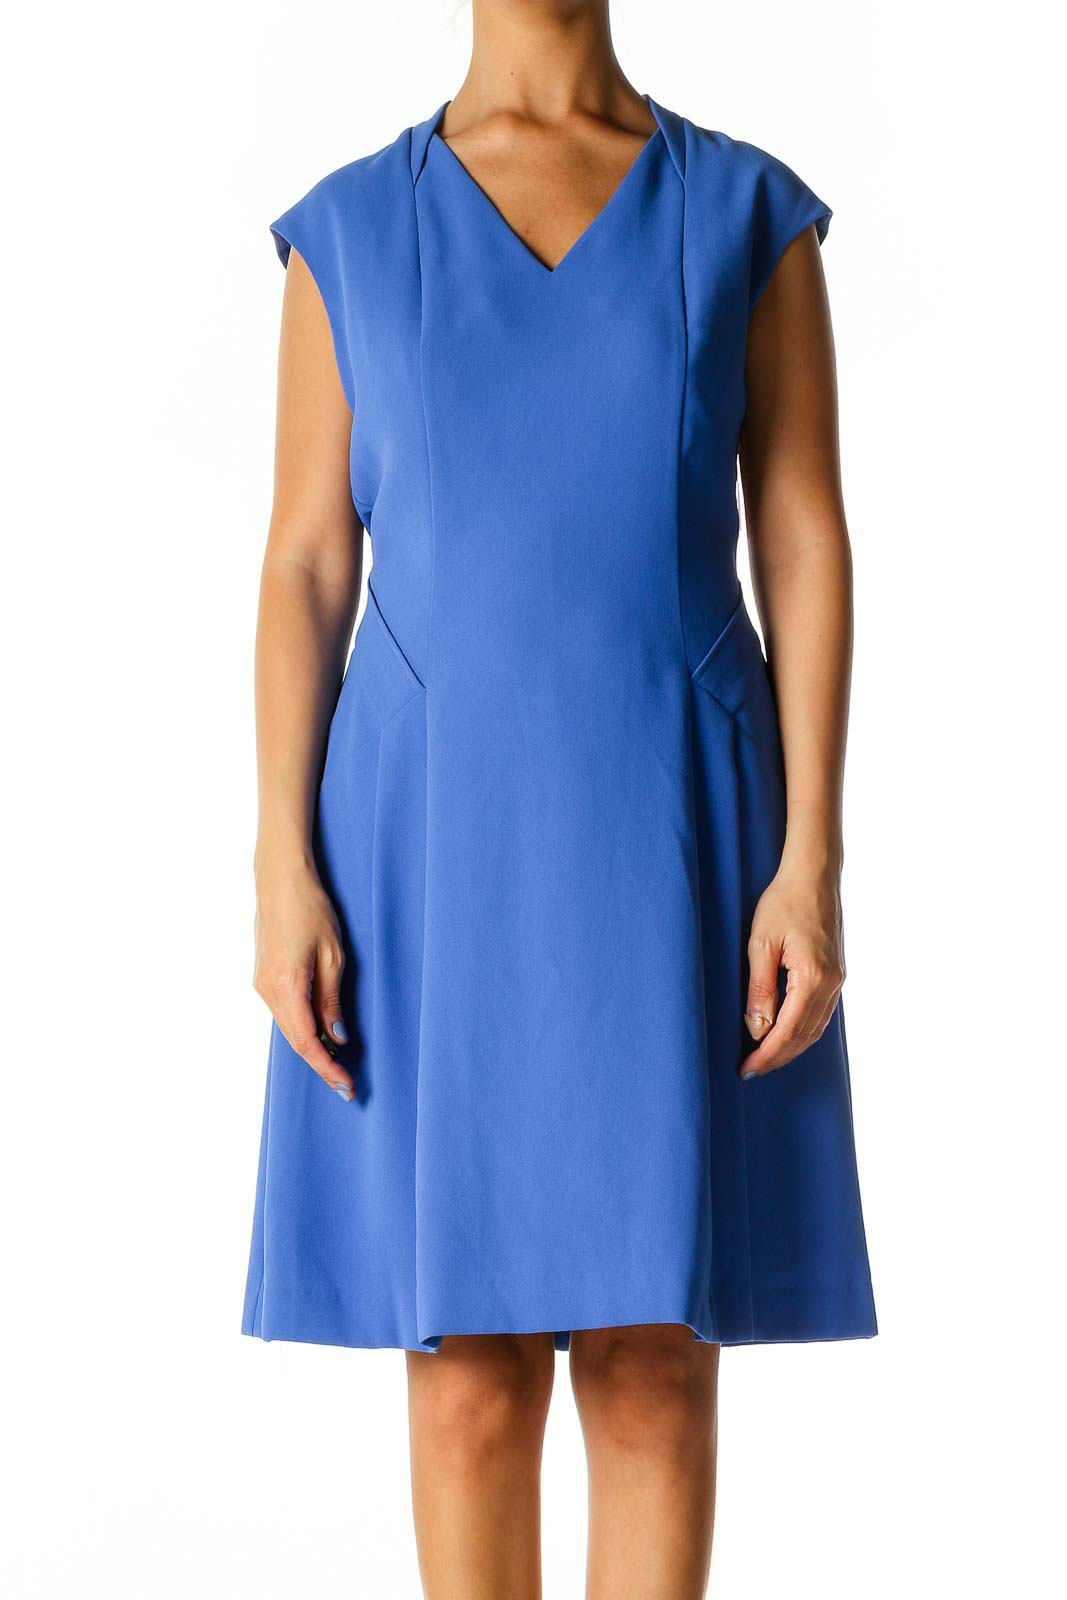 Blue Solid Classic A-Line Dress Front